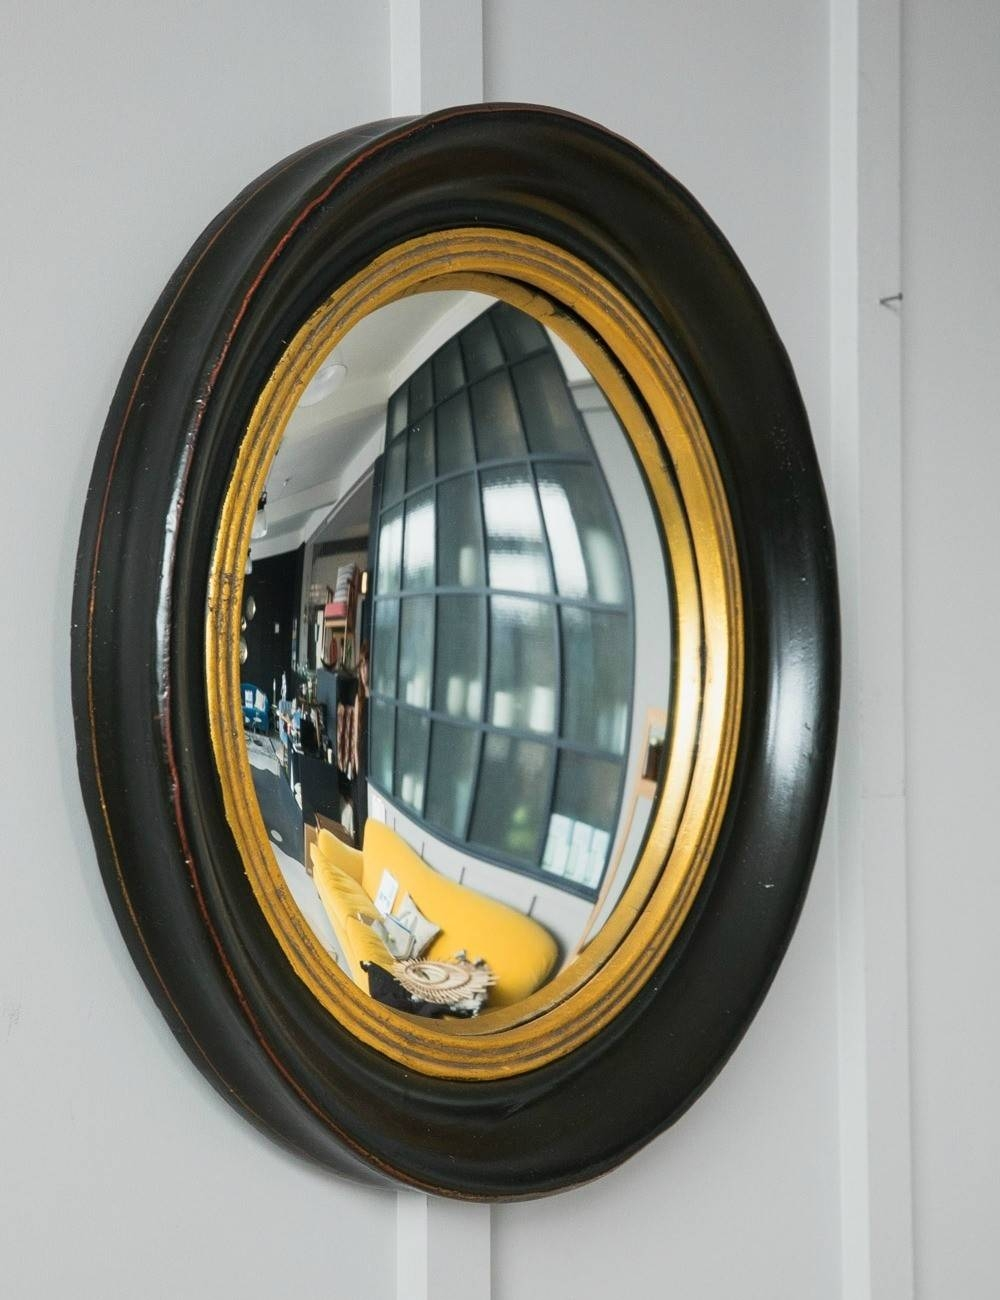 Round Decorative Fish Eye Convex Mirror | Rose & Grey within Black Convex Mirrors (Image 18 of 25)